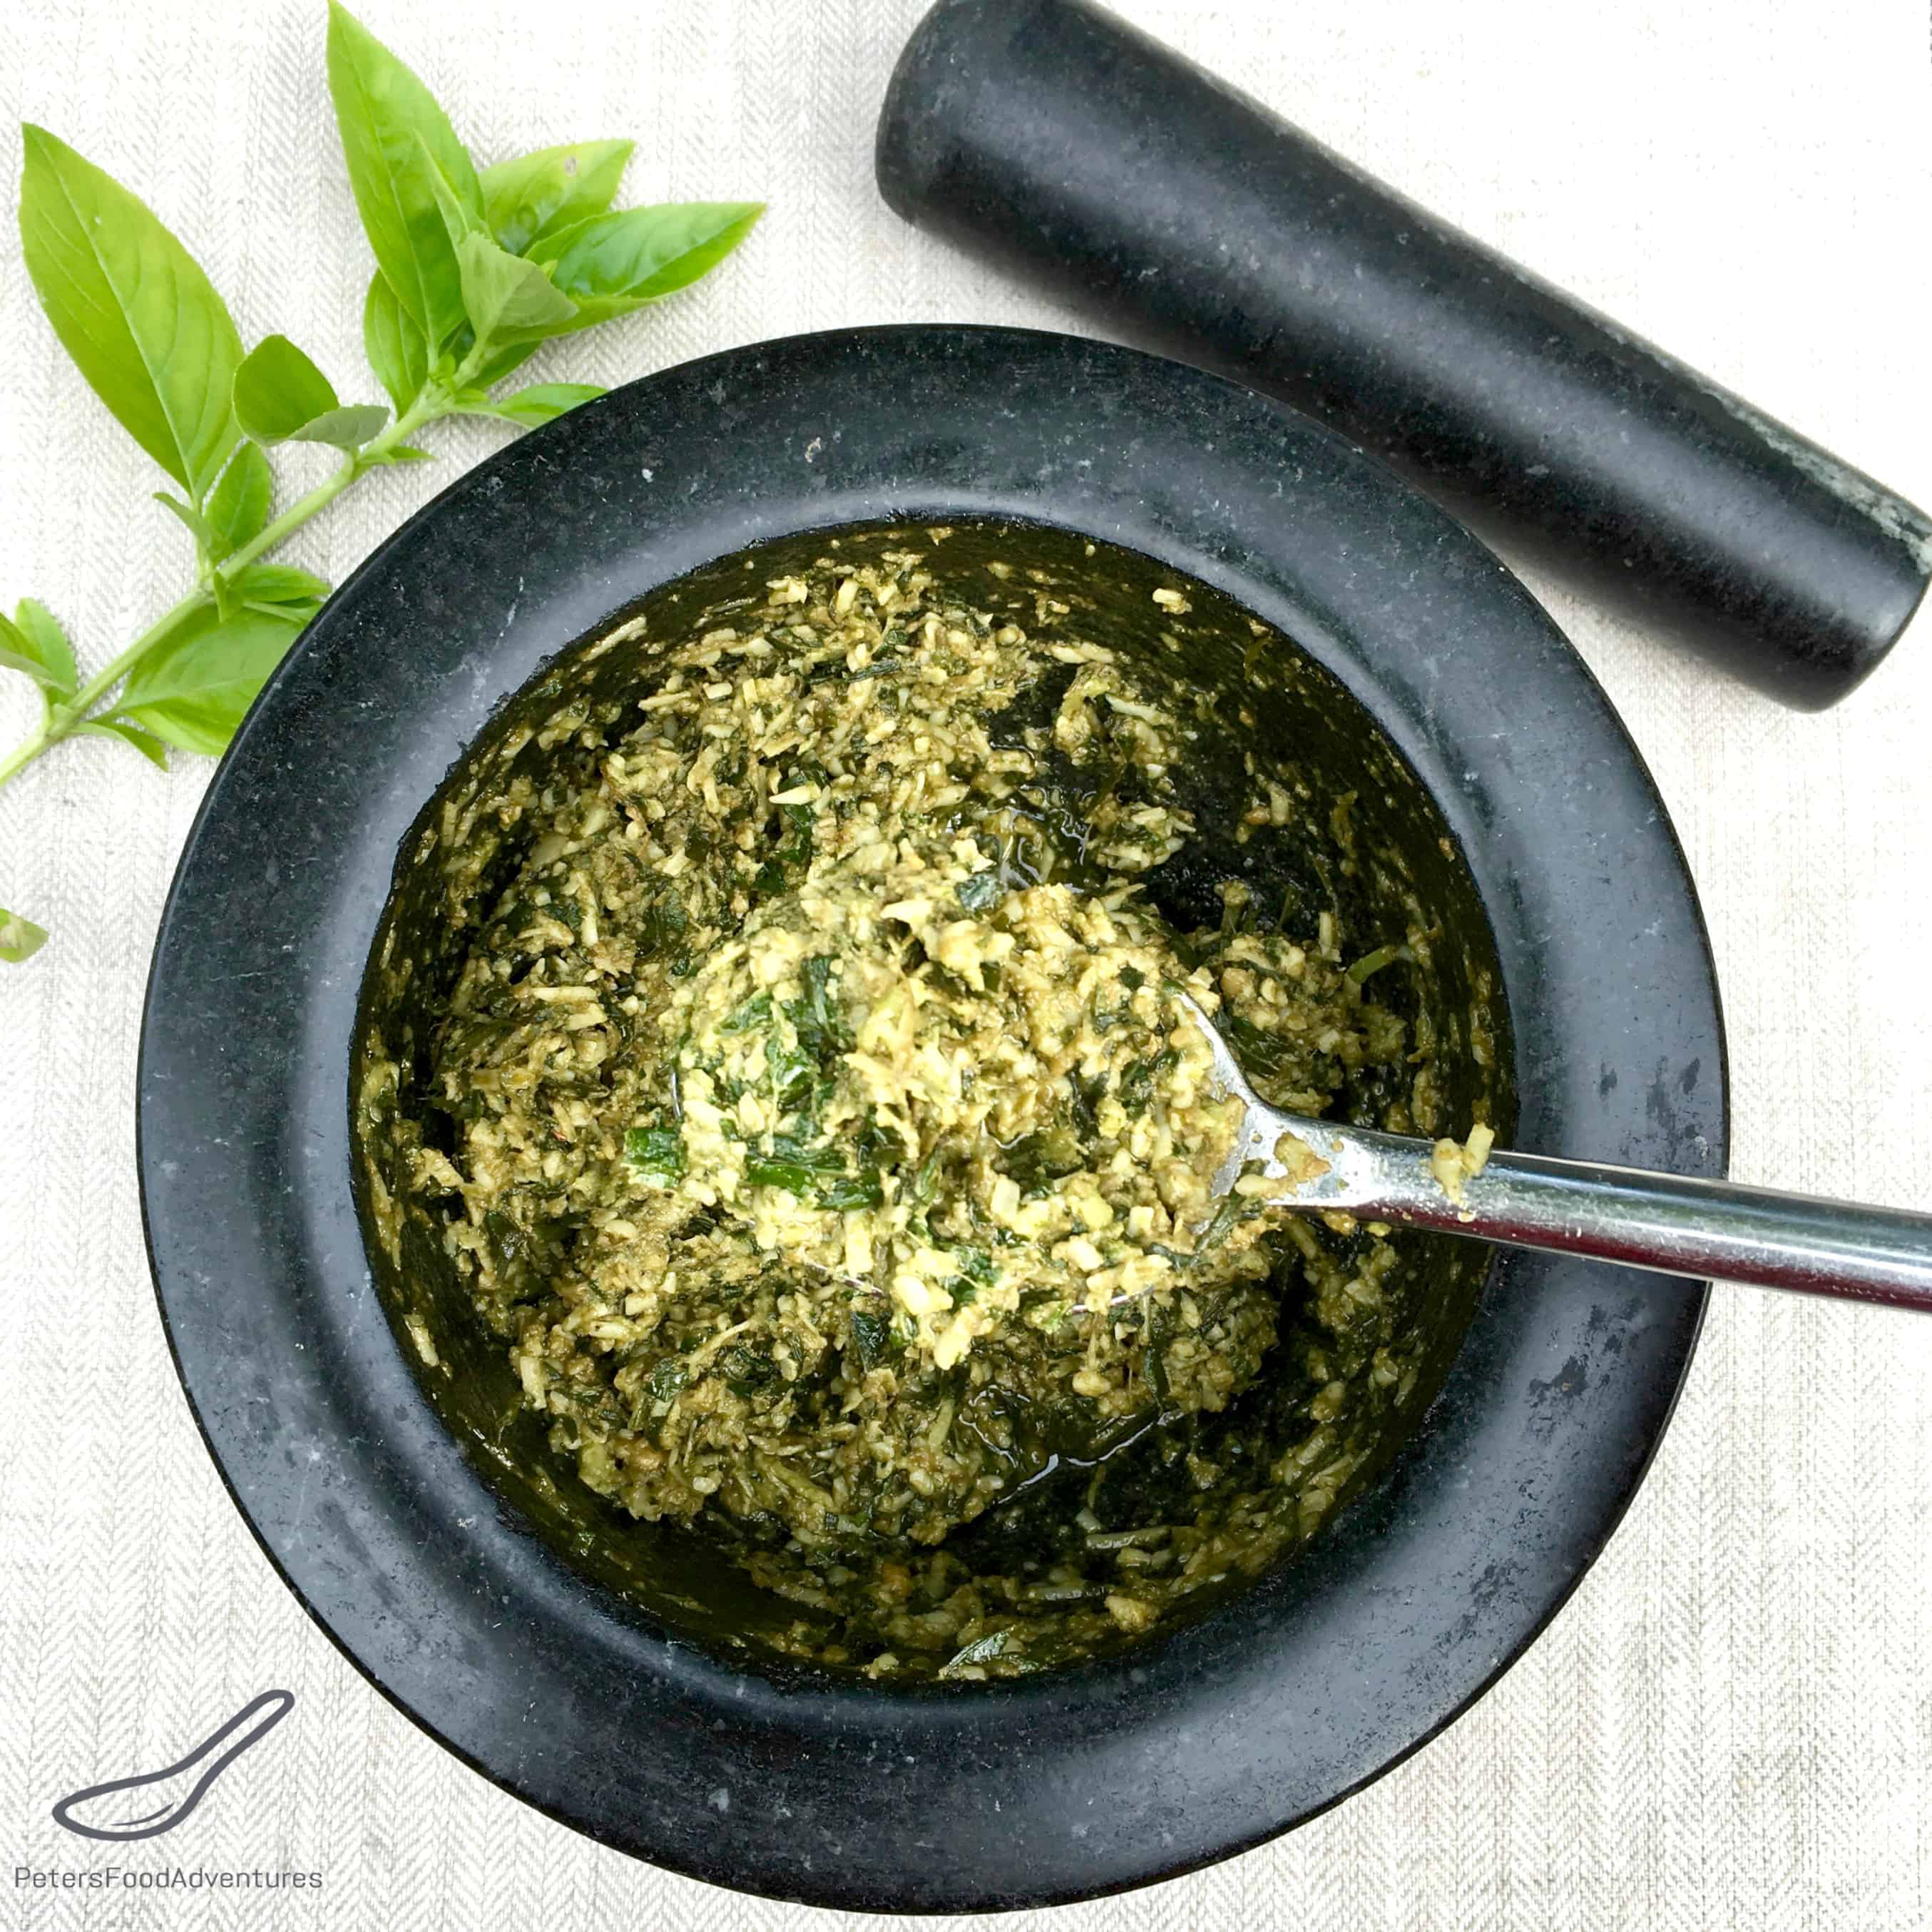 Pesto using a pestle and mortar peters food adventures forumfinder Images